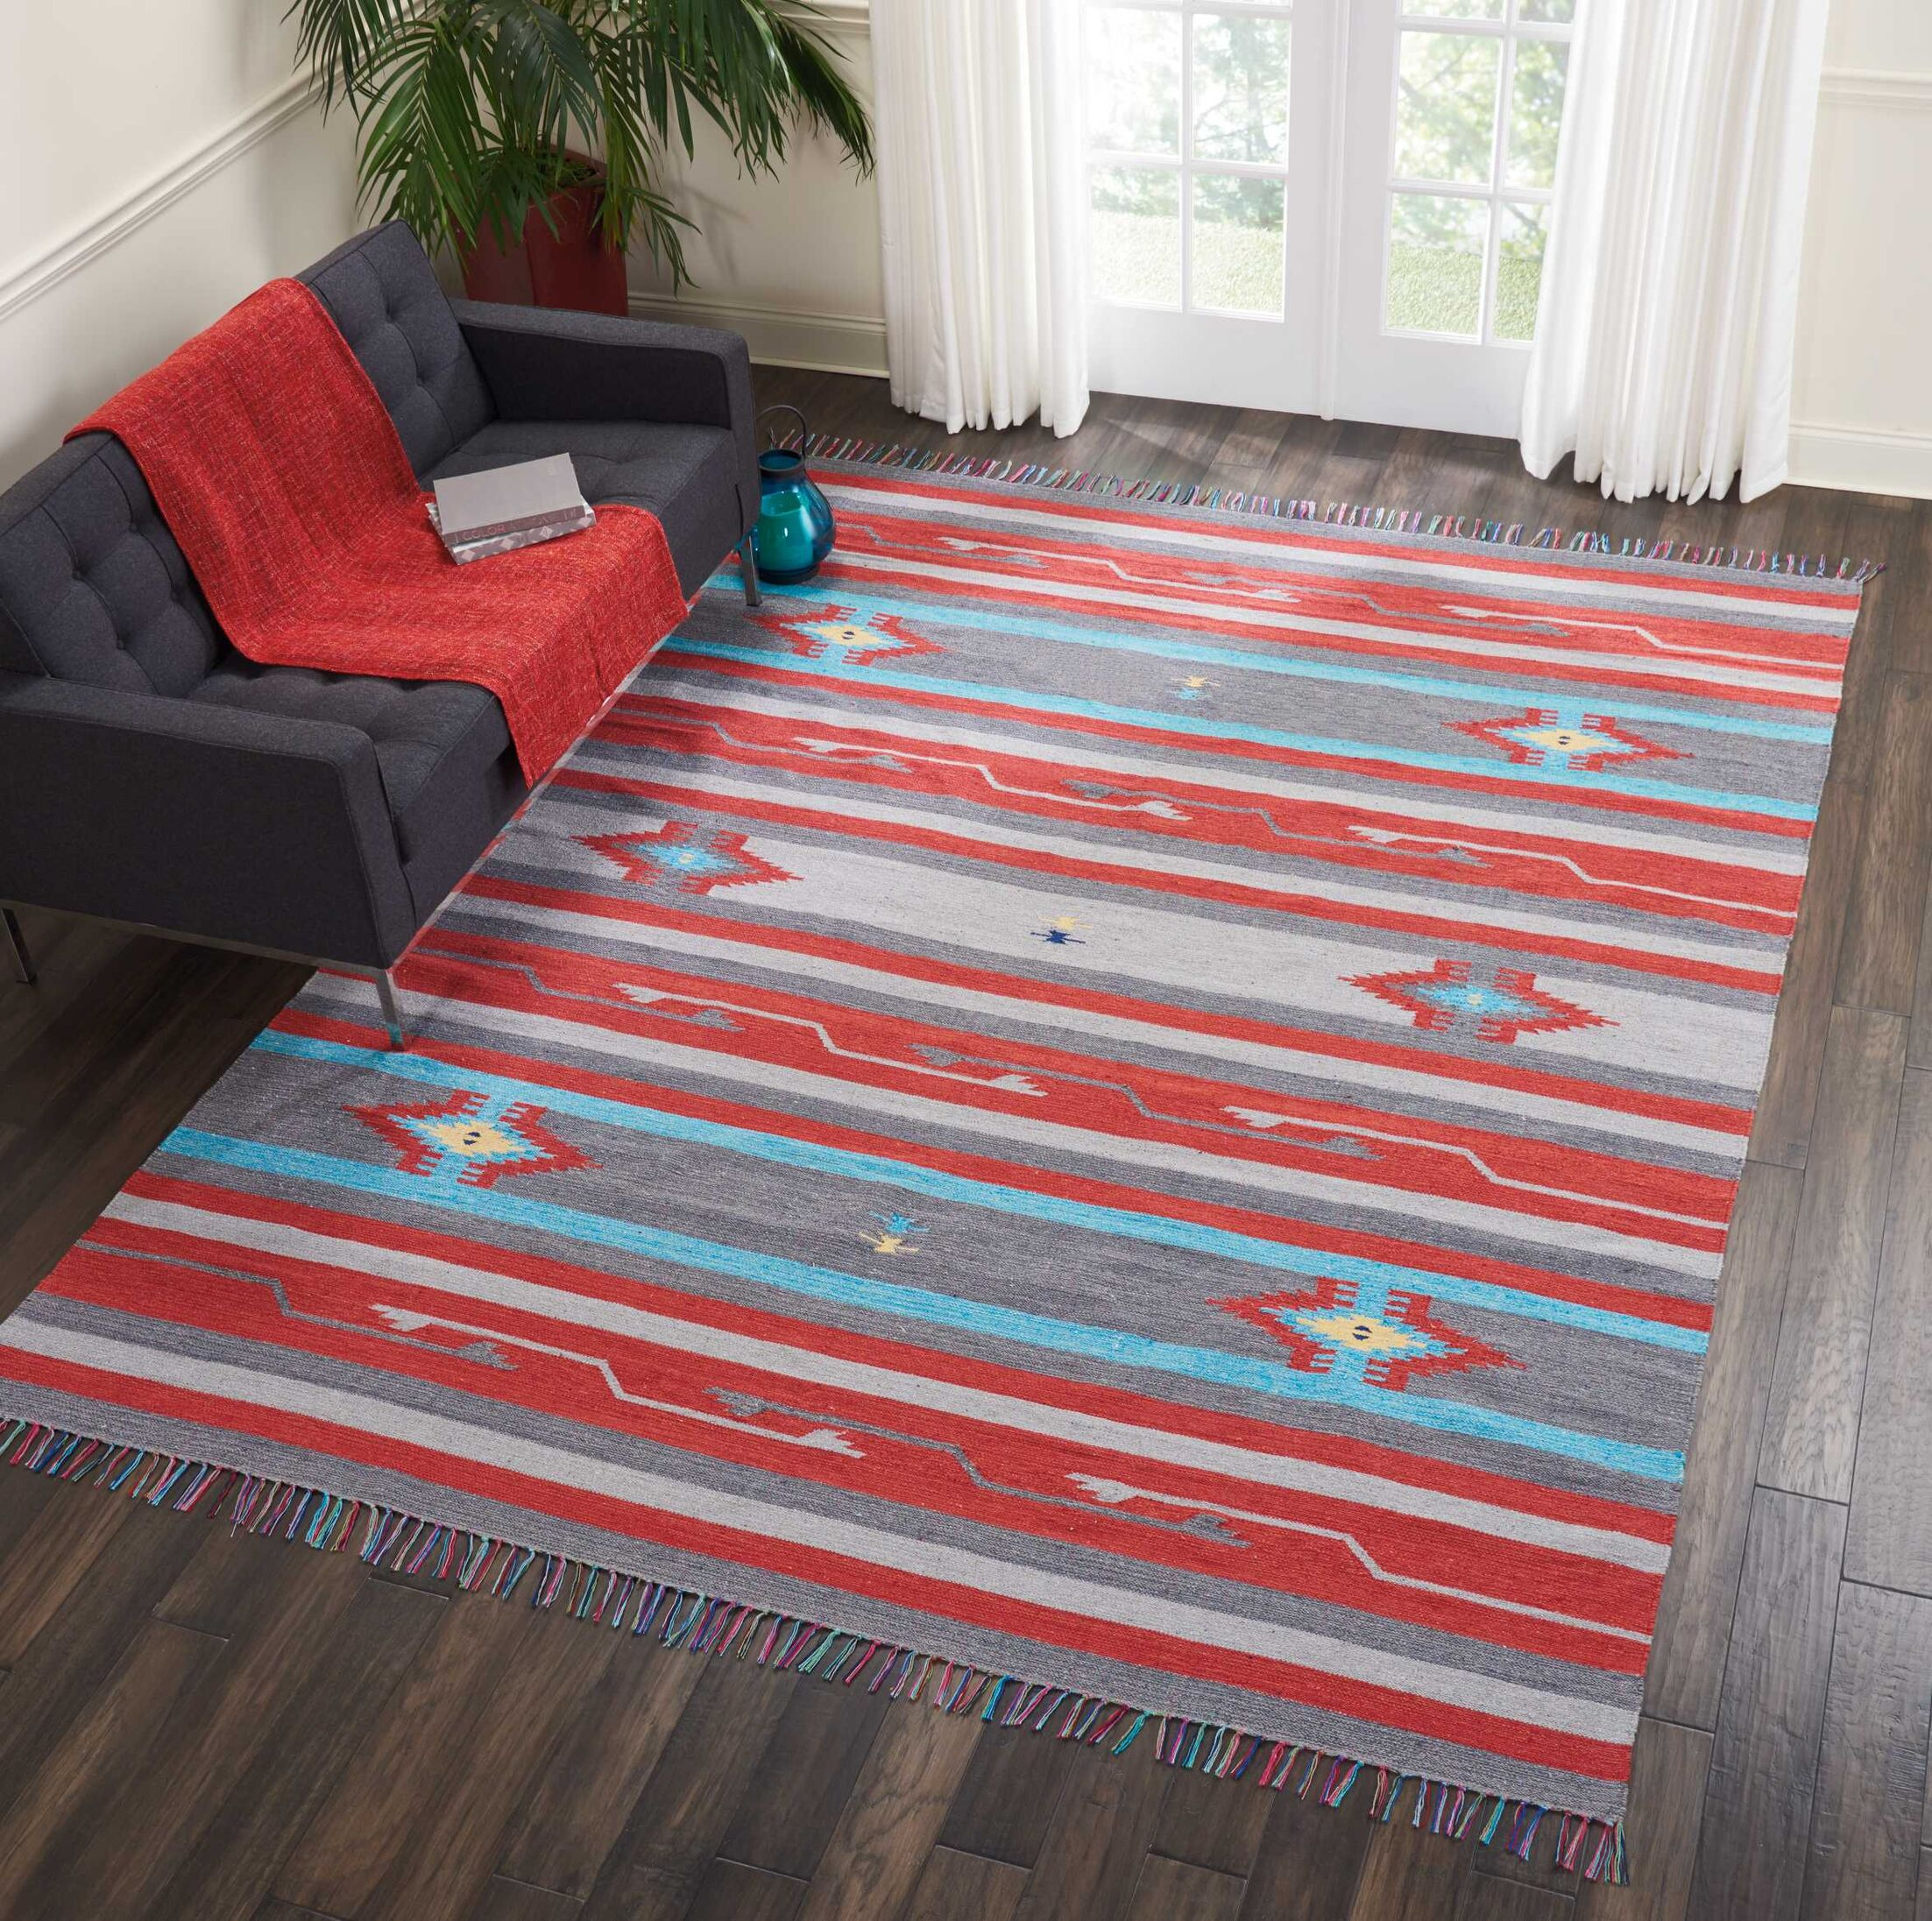 Rocky Hand Woven Gray/Red Area Rug Rug Size: Rectangle 5' x 7'